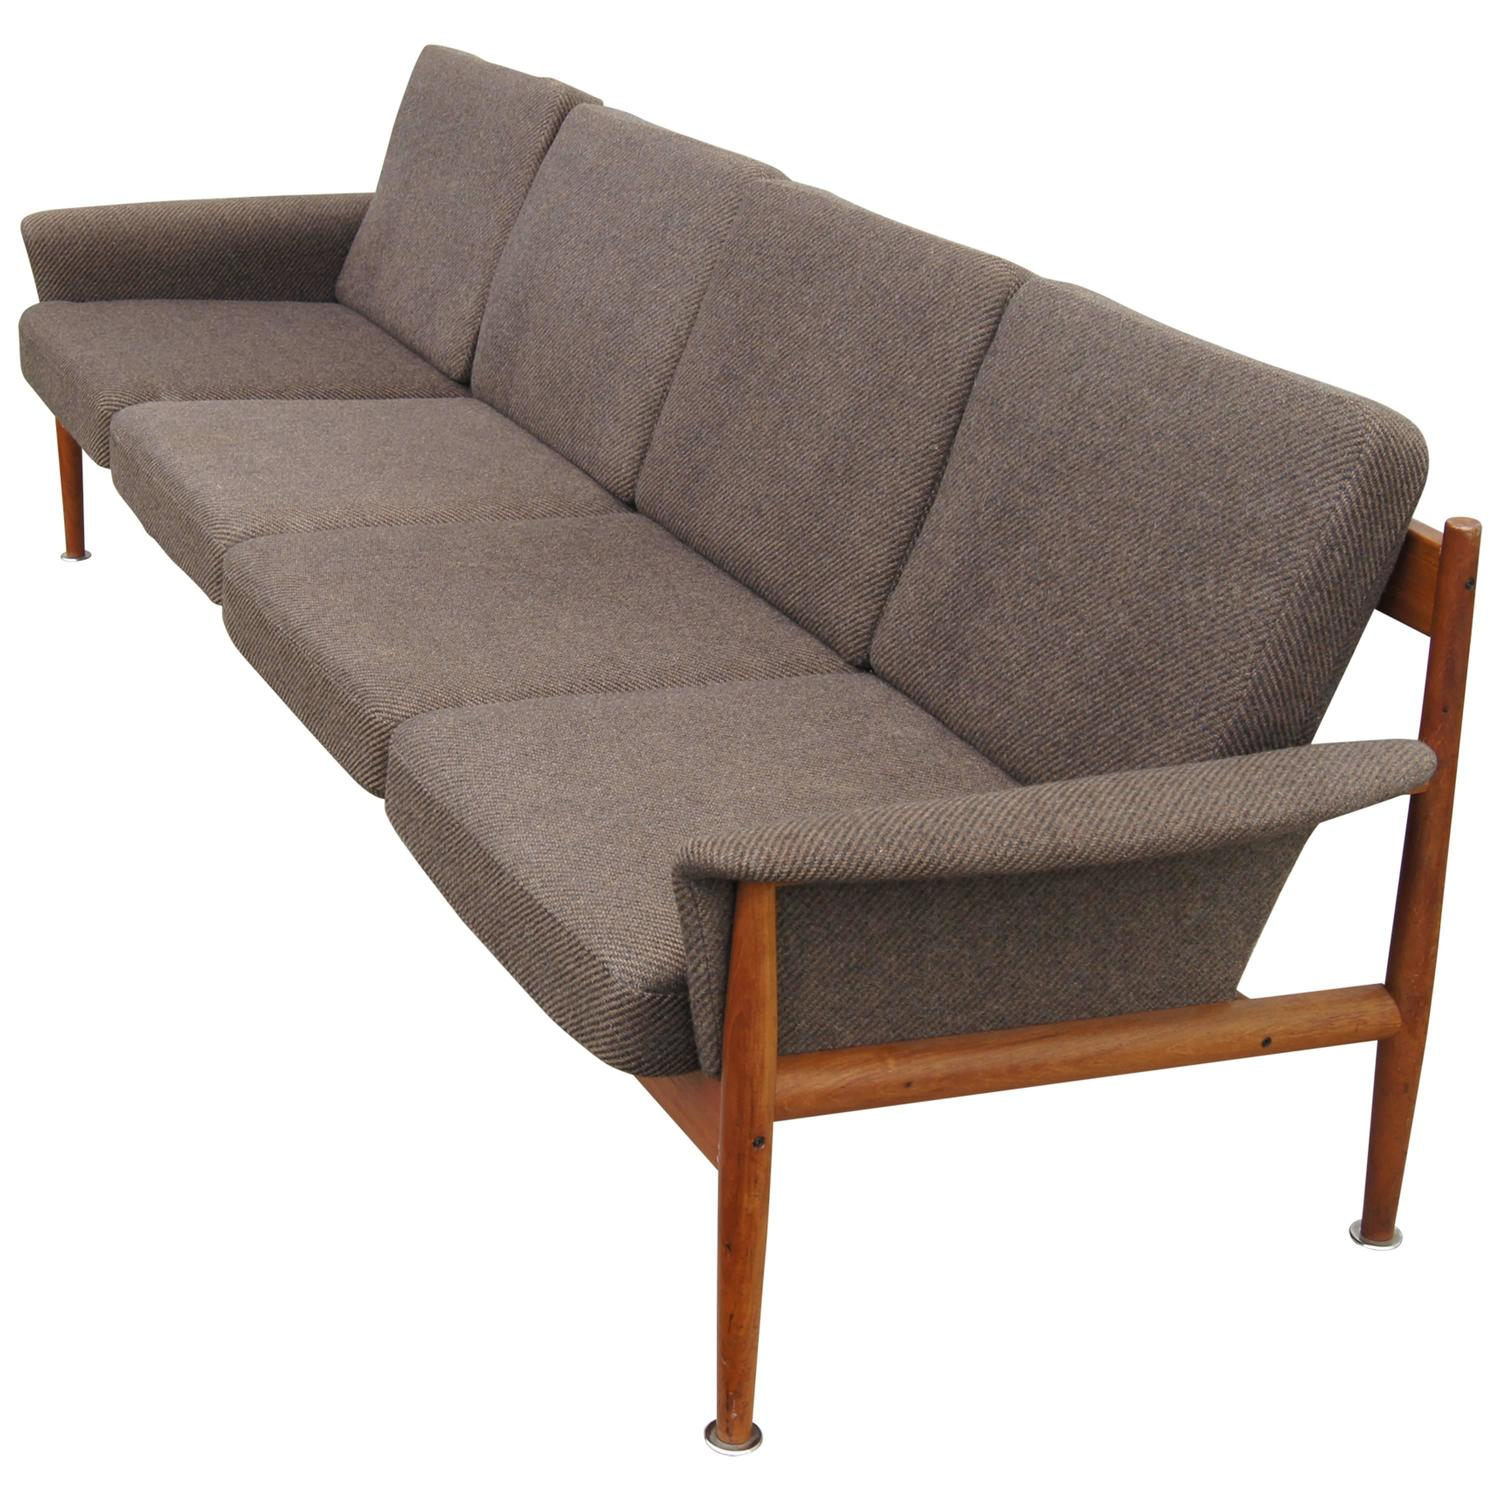 Danish Modern Teak Sofa by Grete Jalk at 1stdibs